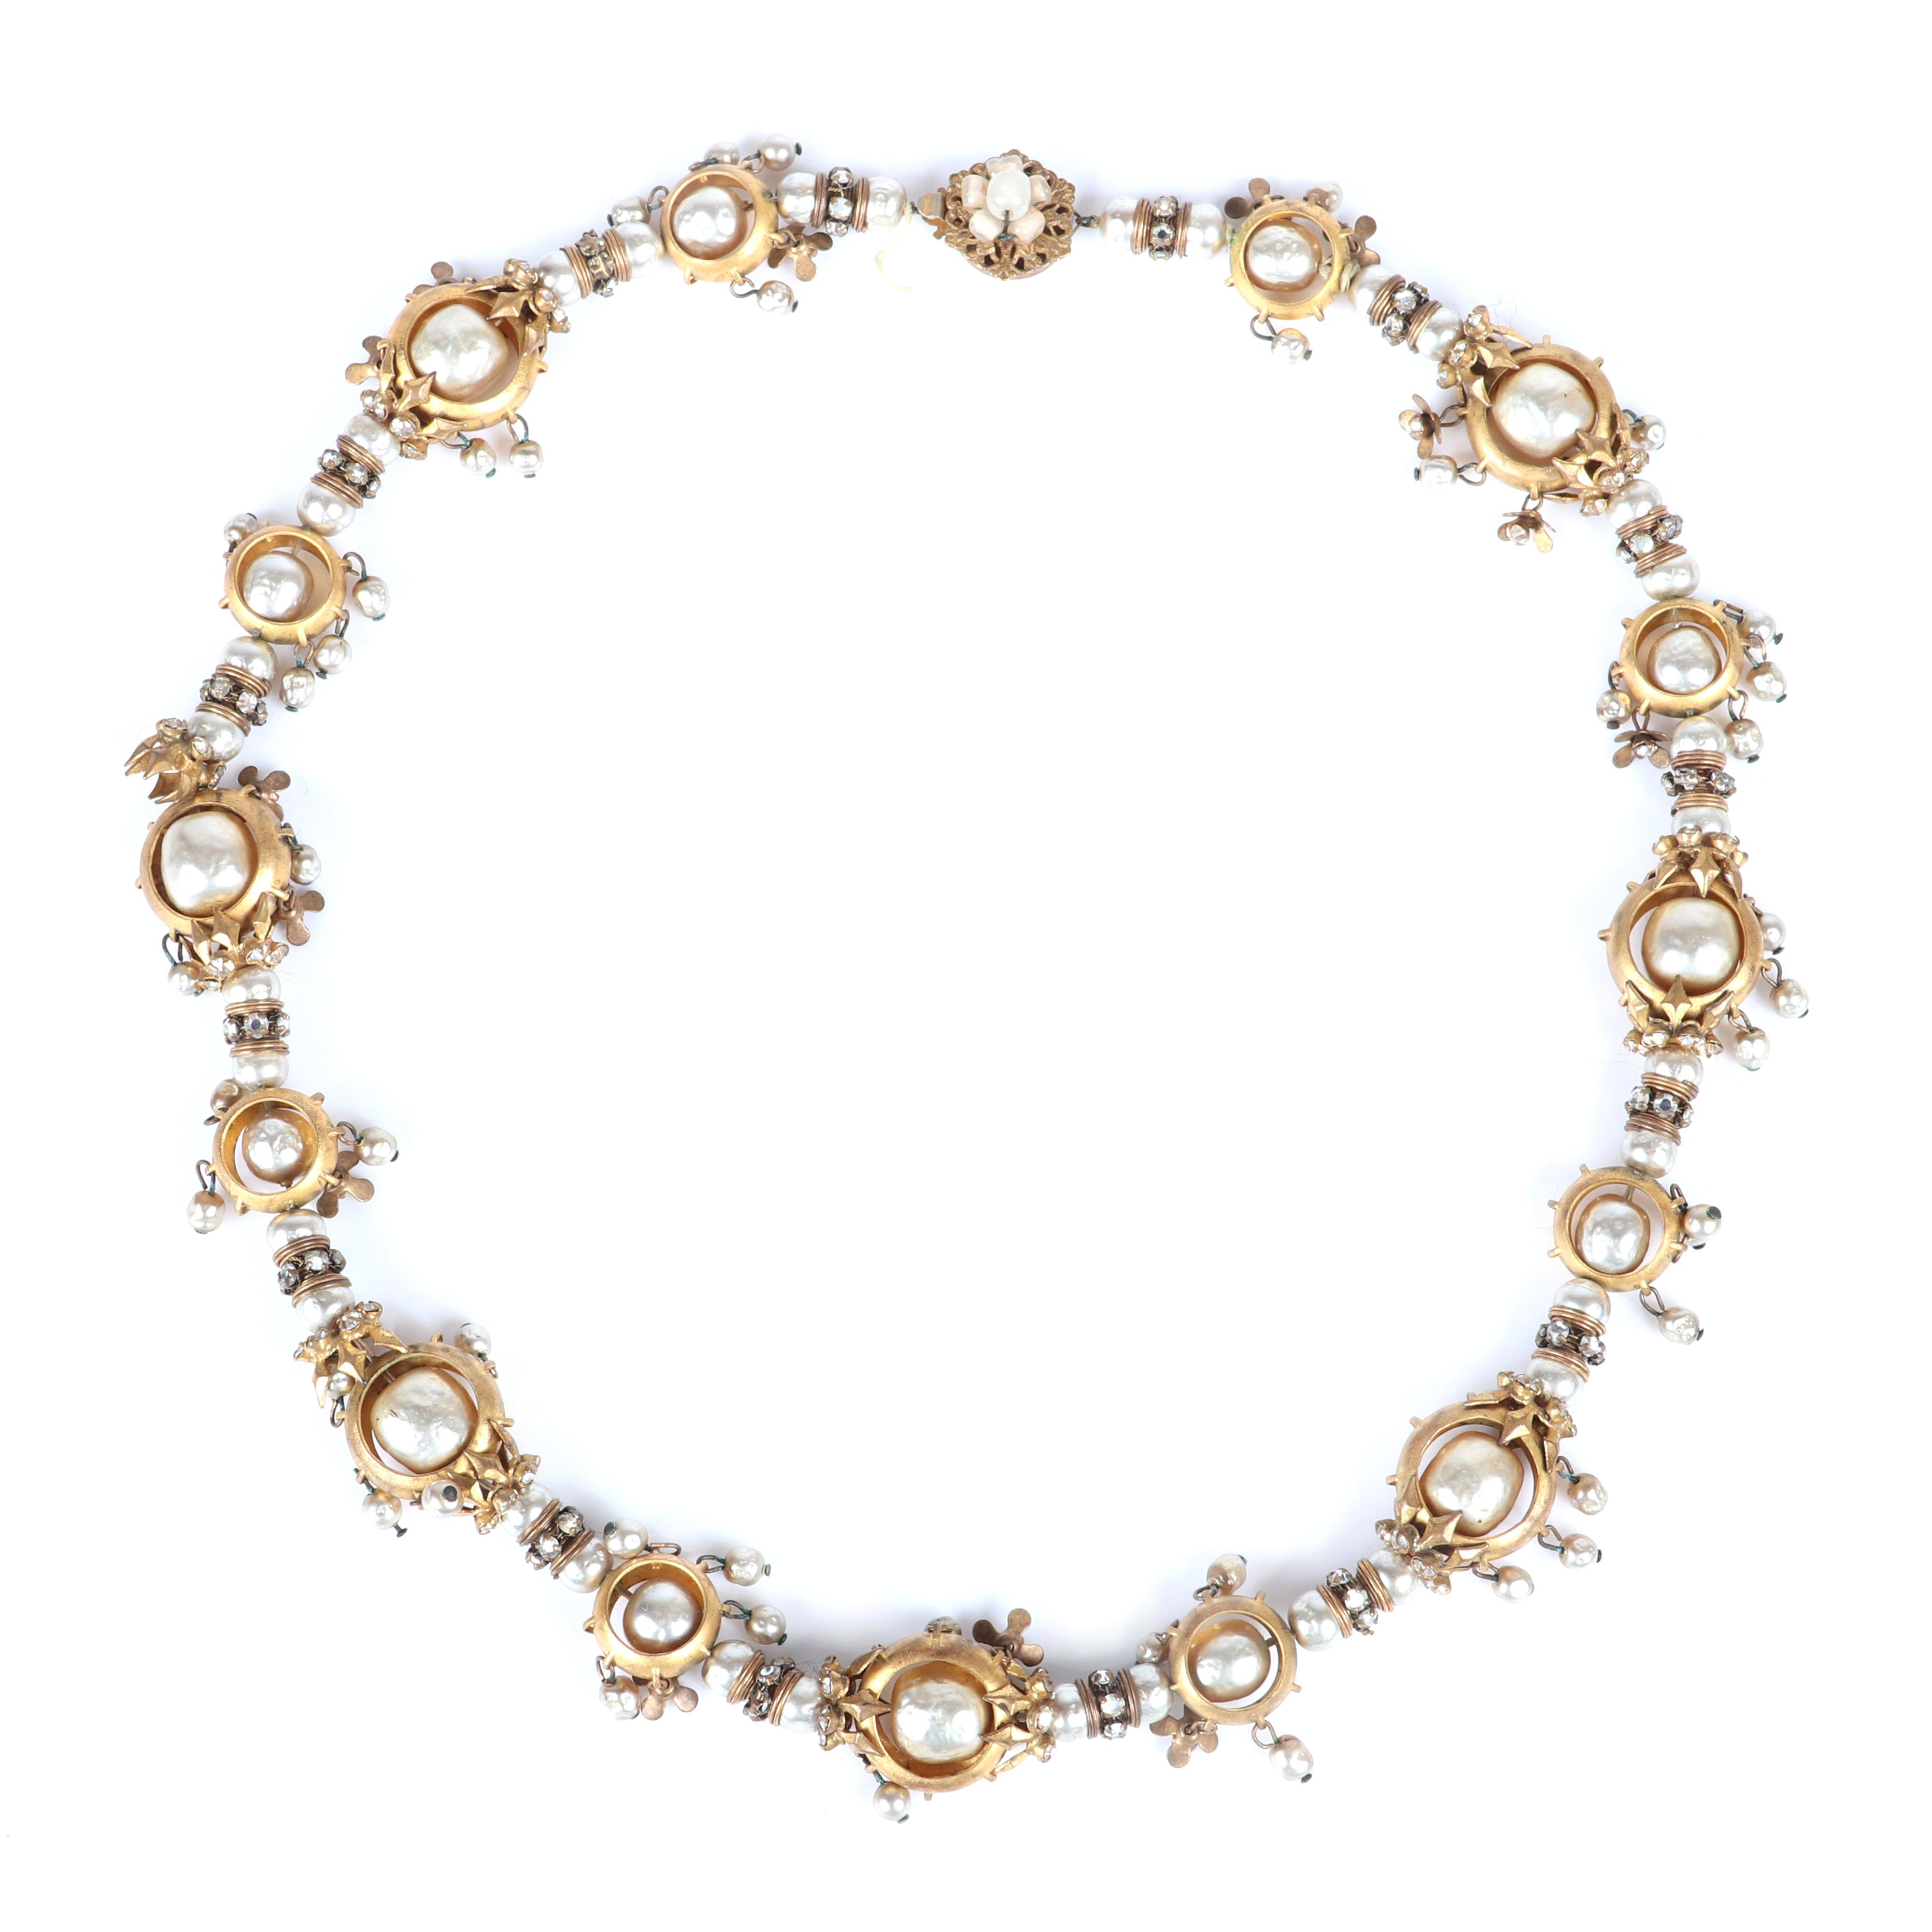 """Miriam Haskell necklace with matte gold tone circular windows framing spinning baroque pearls, with rondelles and dangling small faux pearls. 20""""L"""